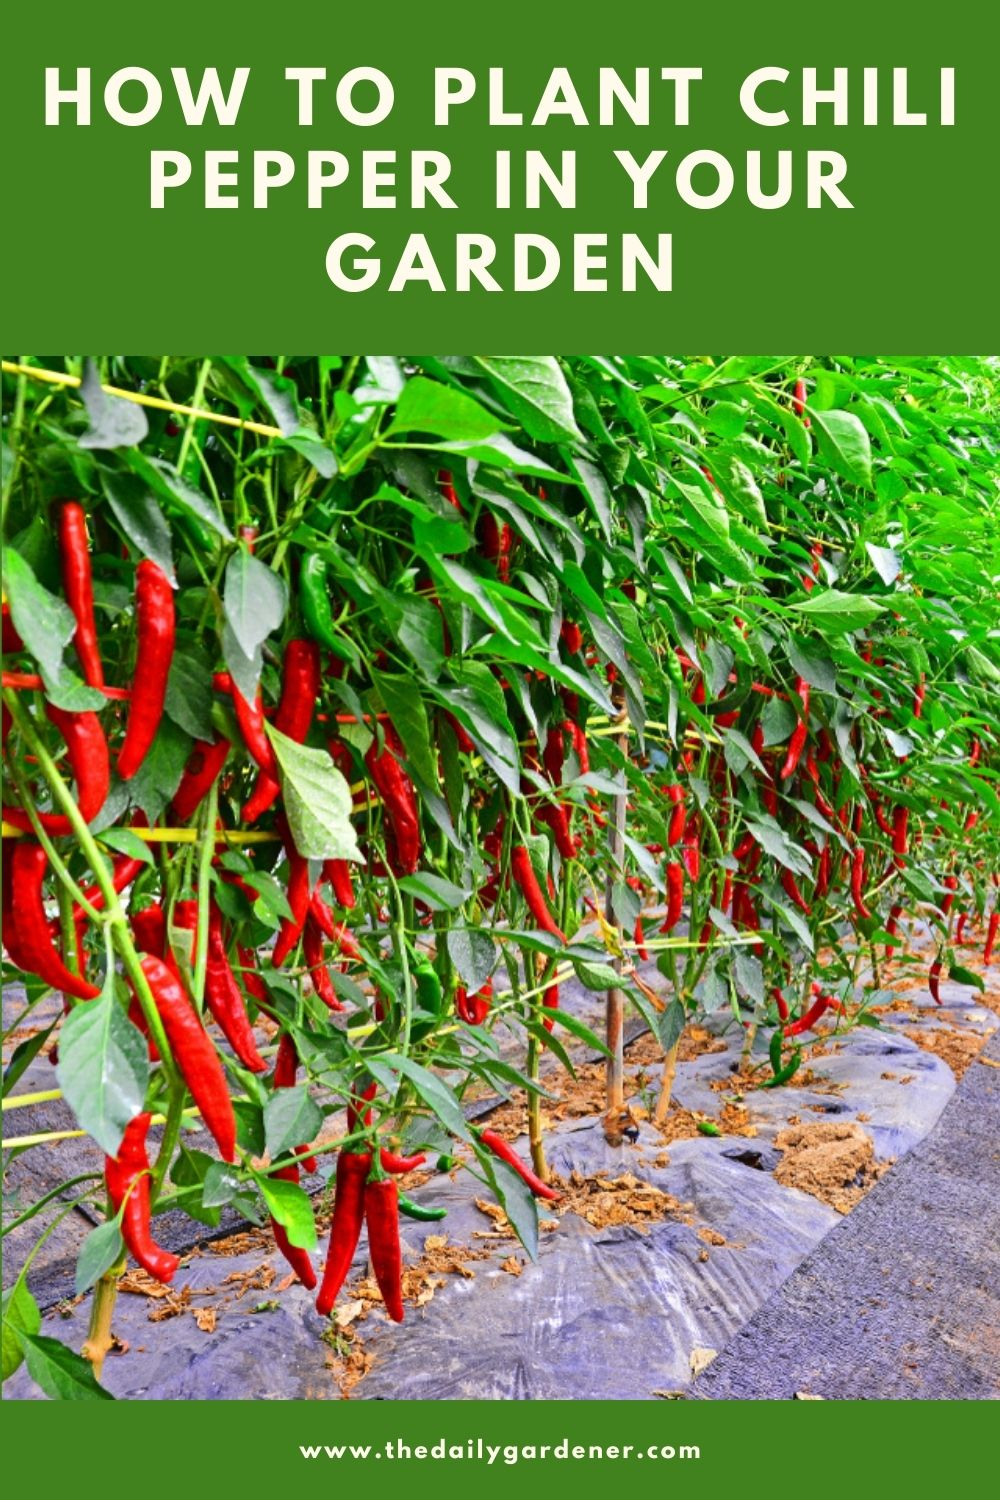 How to Plant Chili Pepper in Your Garden (Tricks to Care!) 2